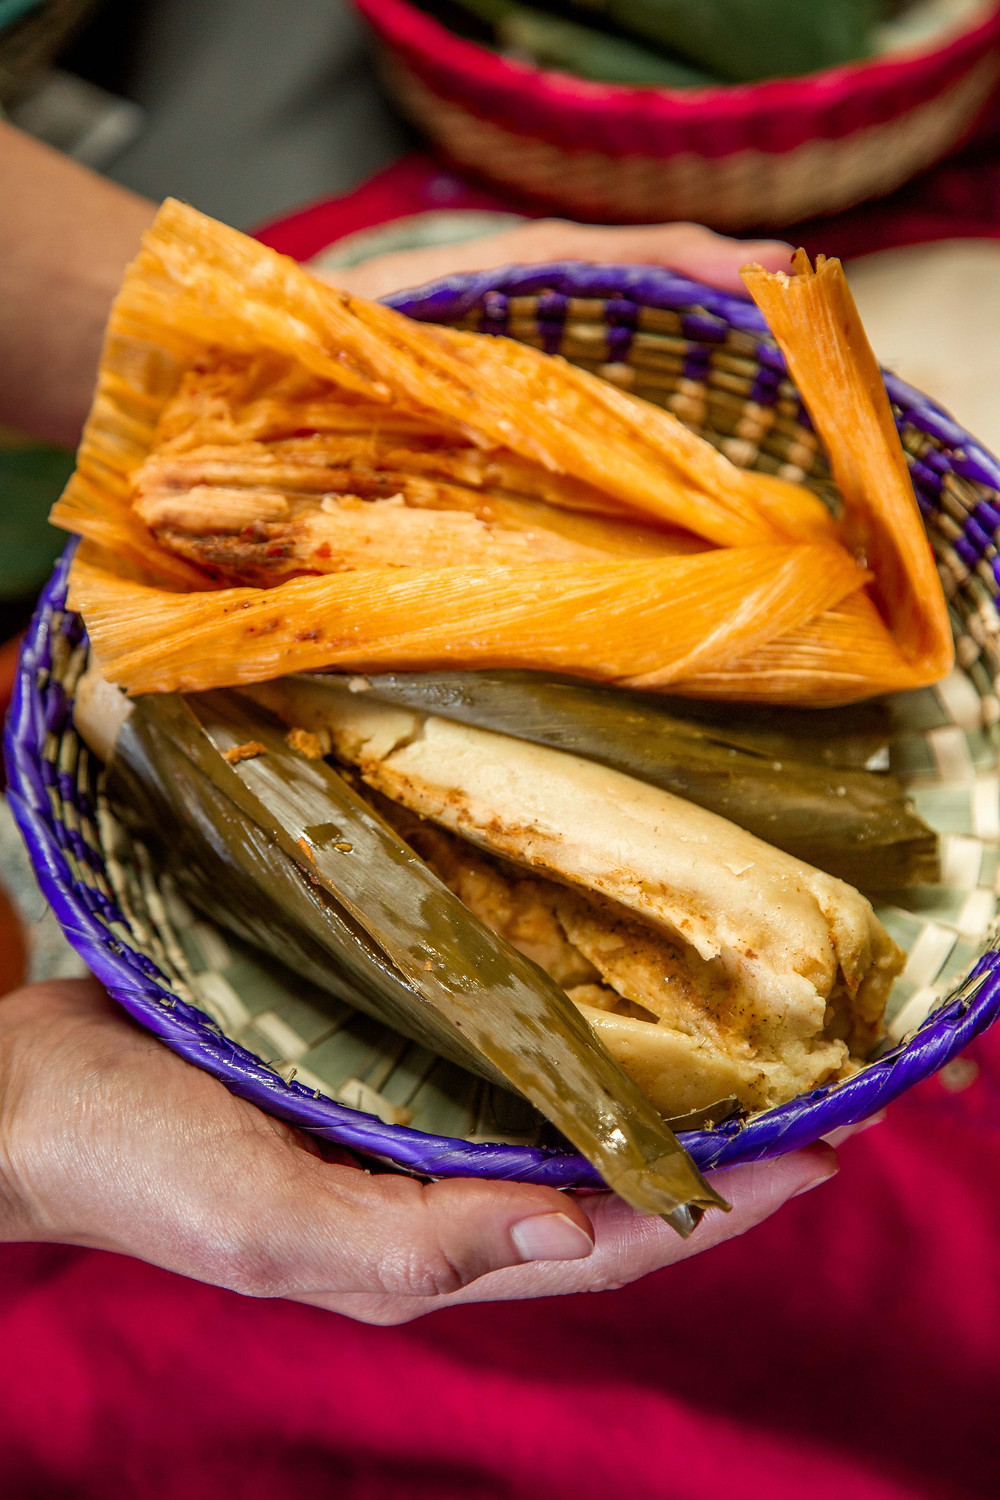 Salvadoran and Mexican tamales made in-house at Paraiso Tropical Latin Food Market.